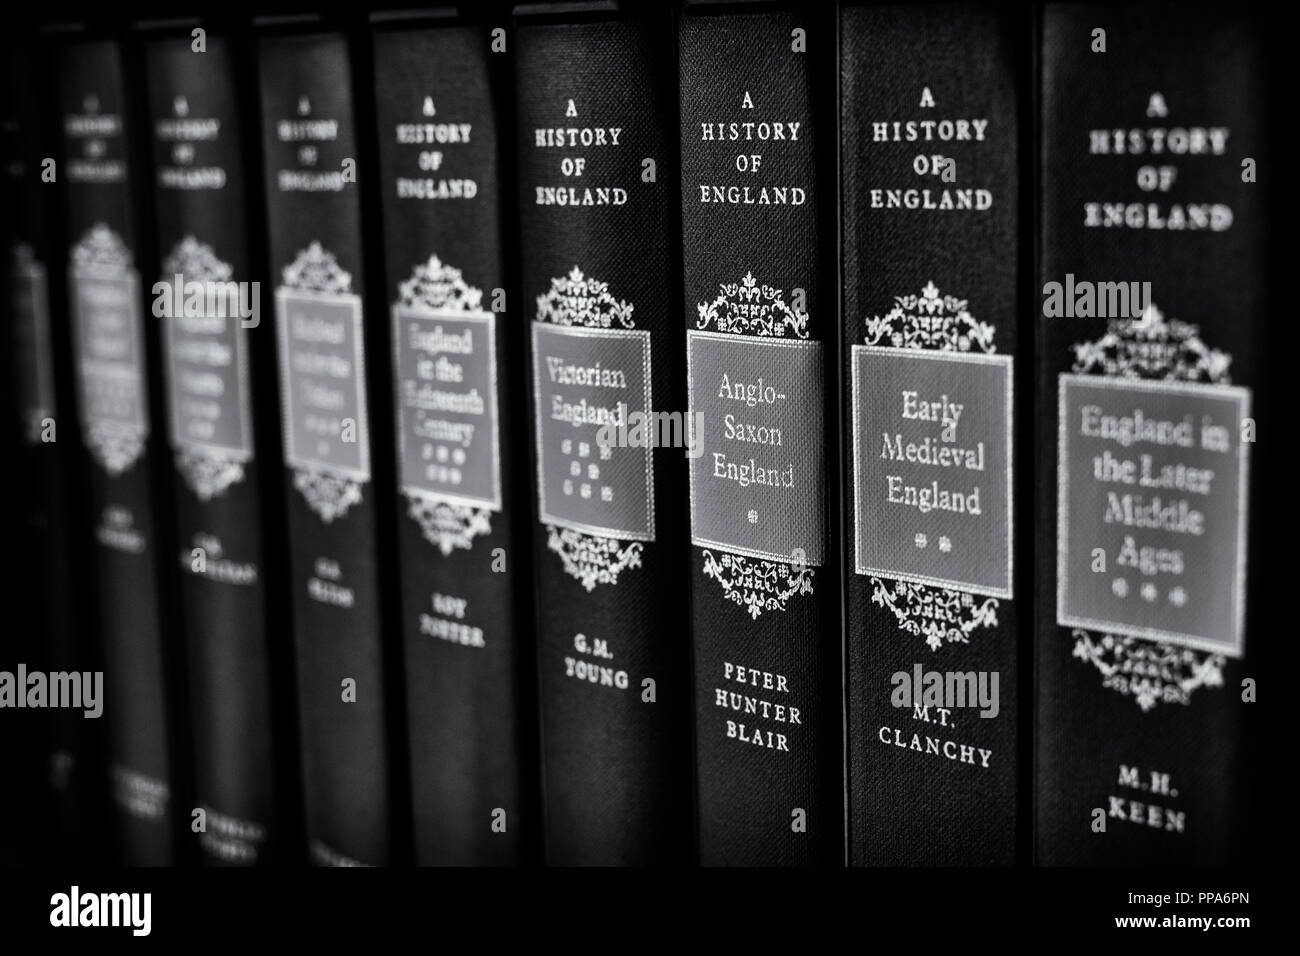 A history of england books on a shelf. selective focus. UK. Black and white - Stock Image